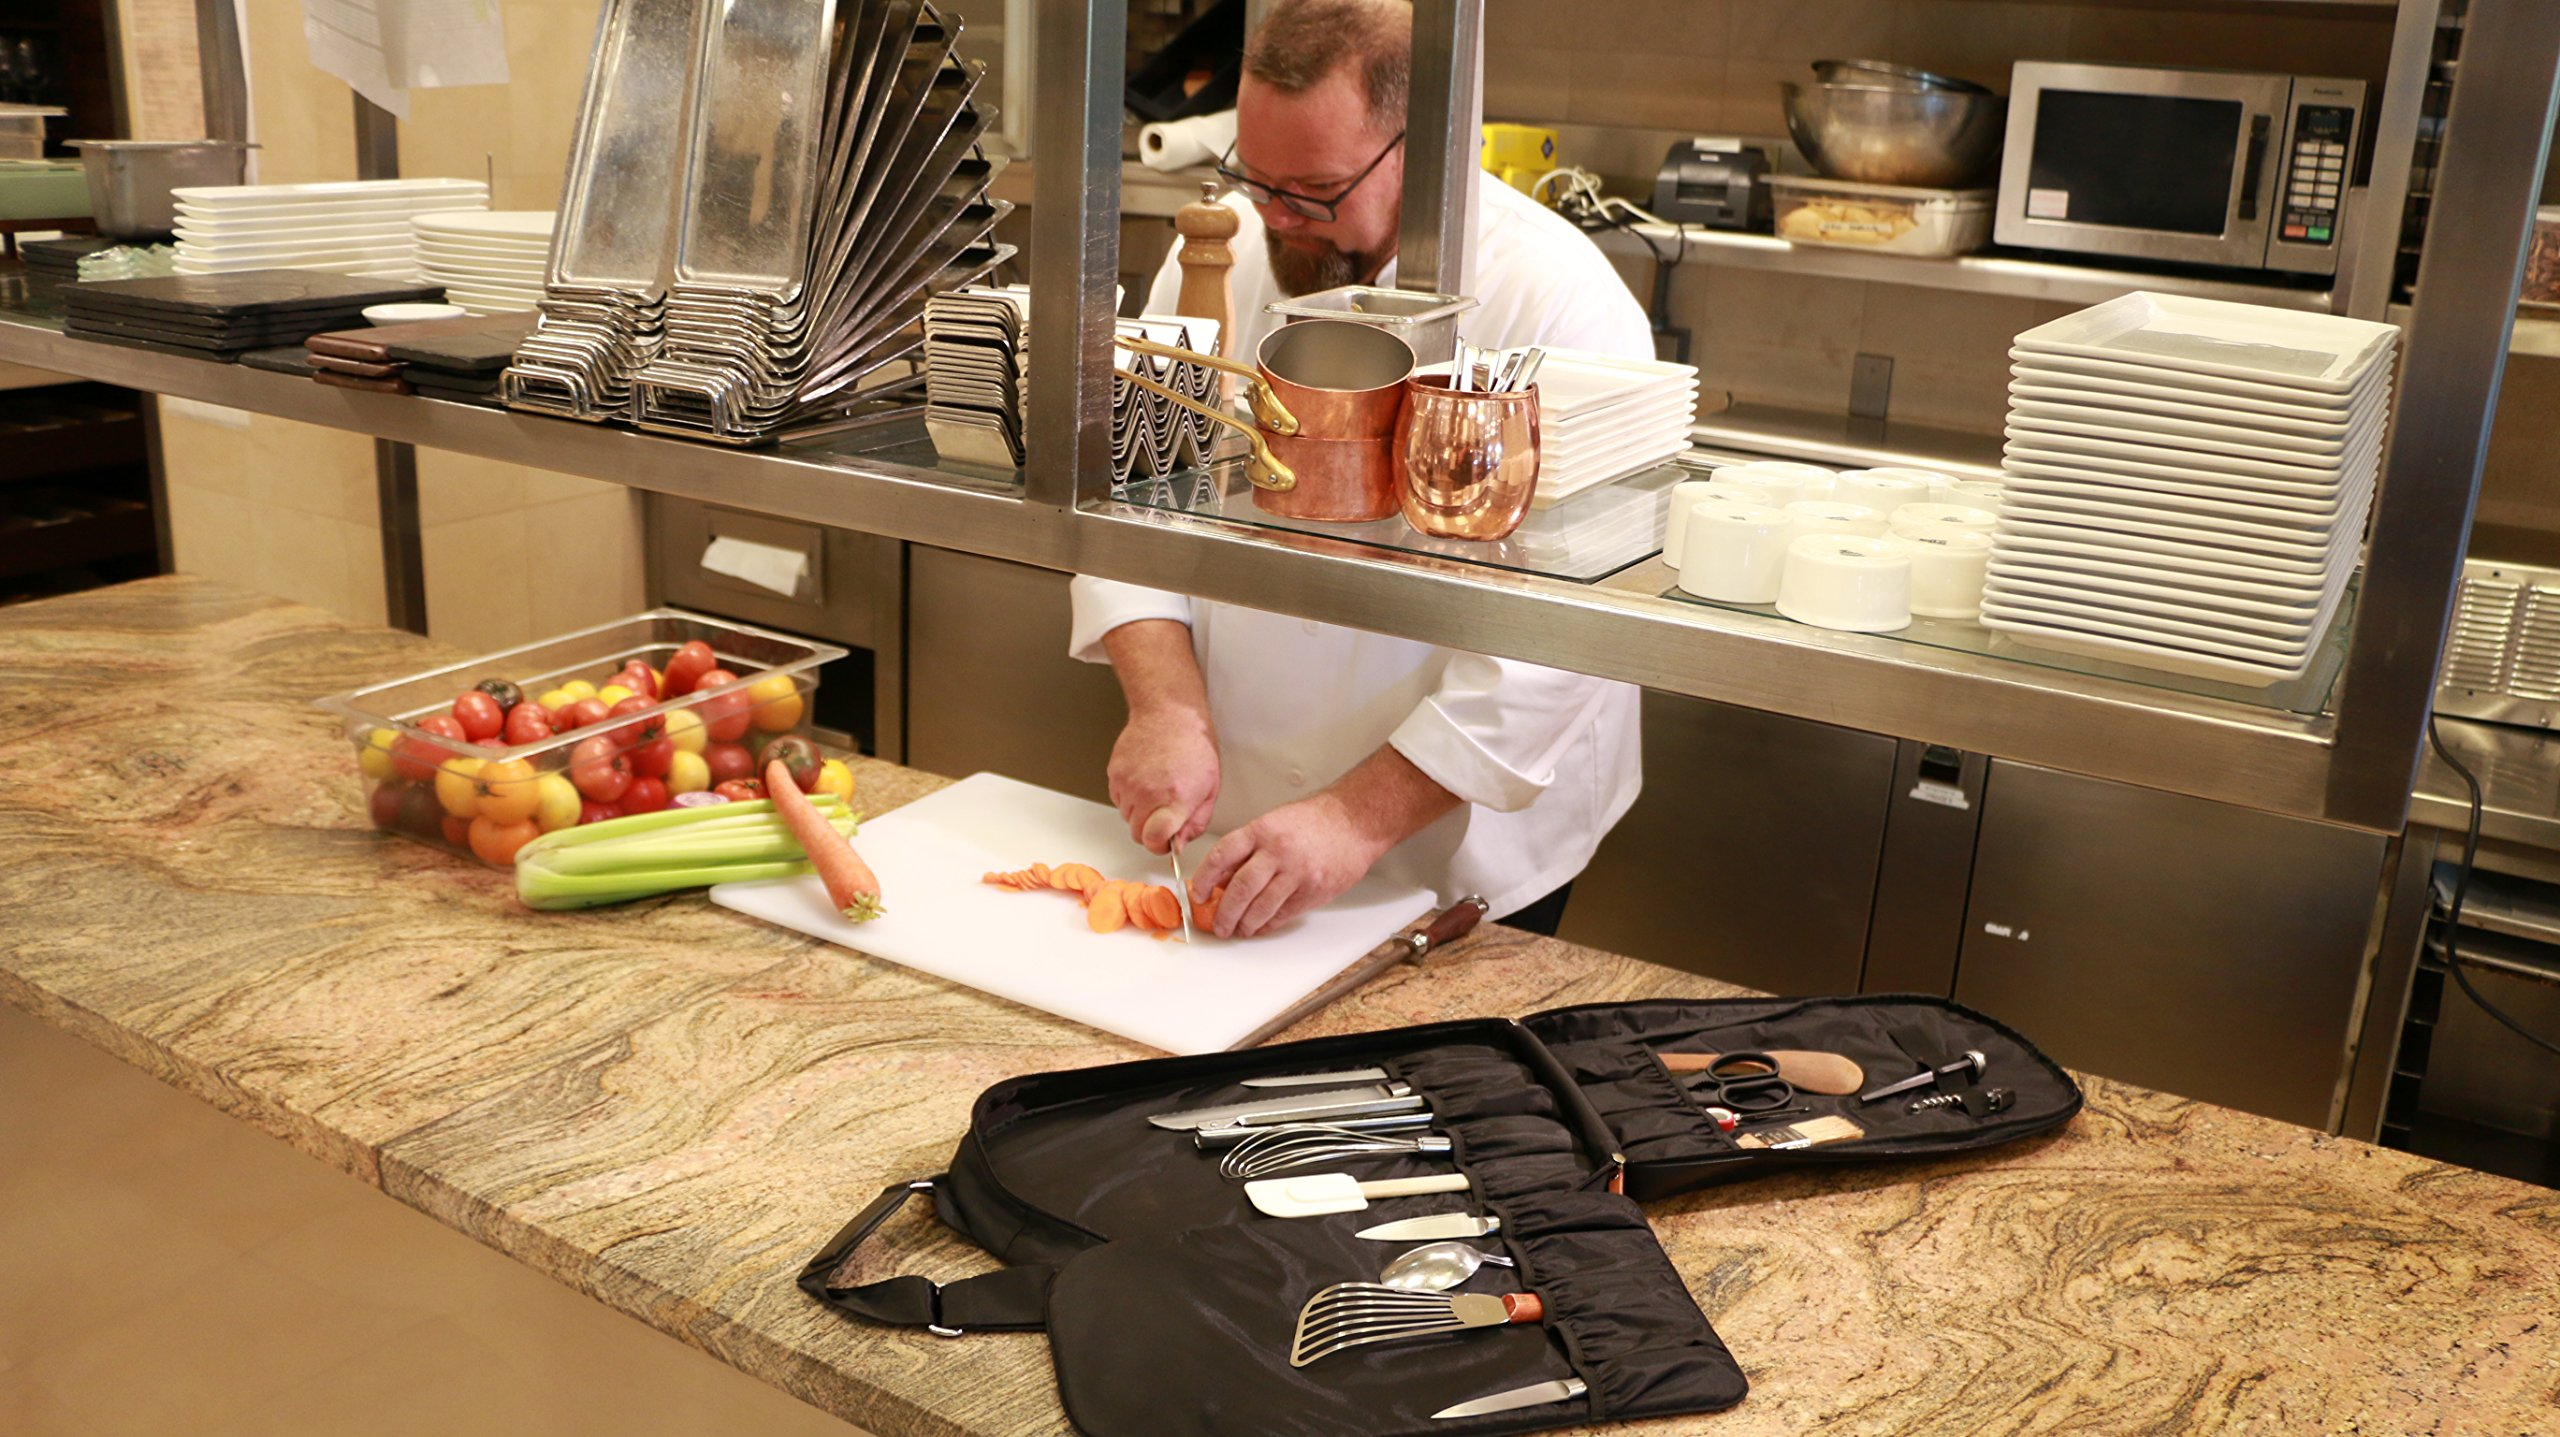 M(sqd) Roundsman Chef Knife Bag, Holds 17 Knives and Utensils with 3 Pockets for Tablet and Notebook by M(sqd) (Image #7)